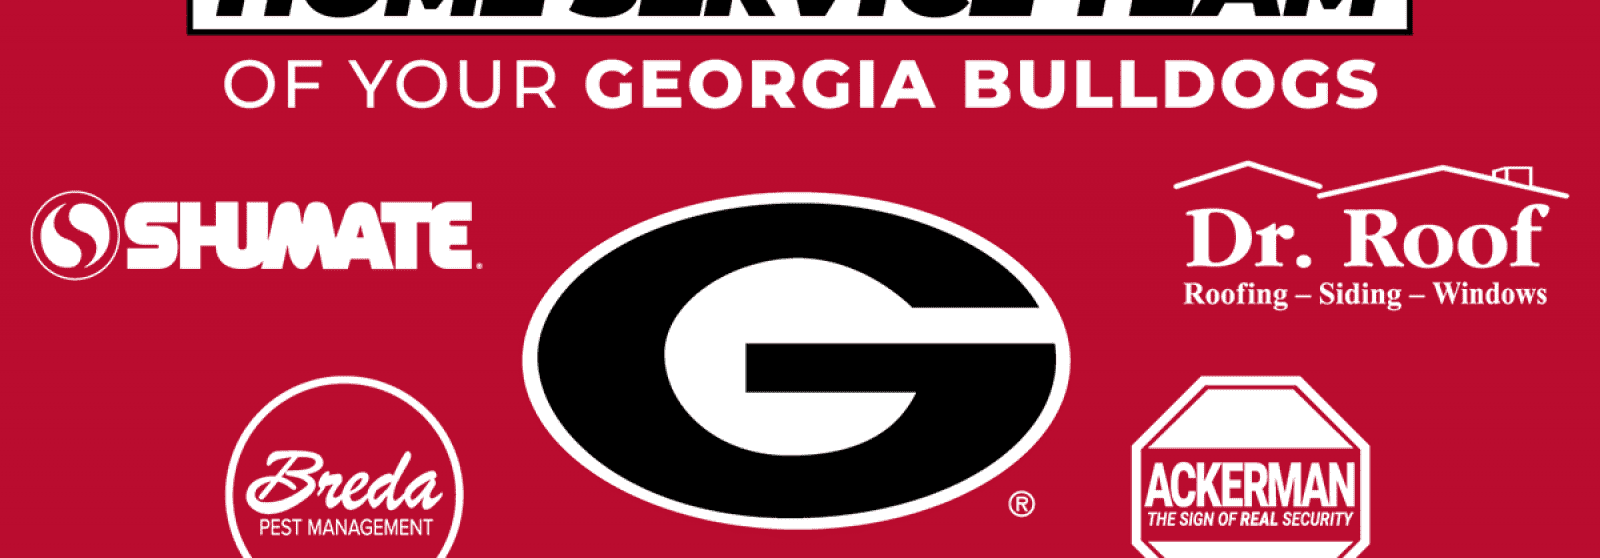 Georgia Bulldogs Home Services Team